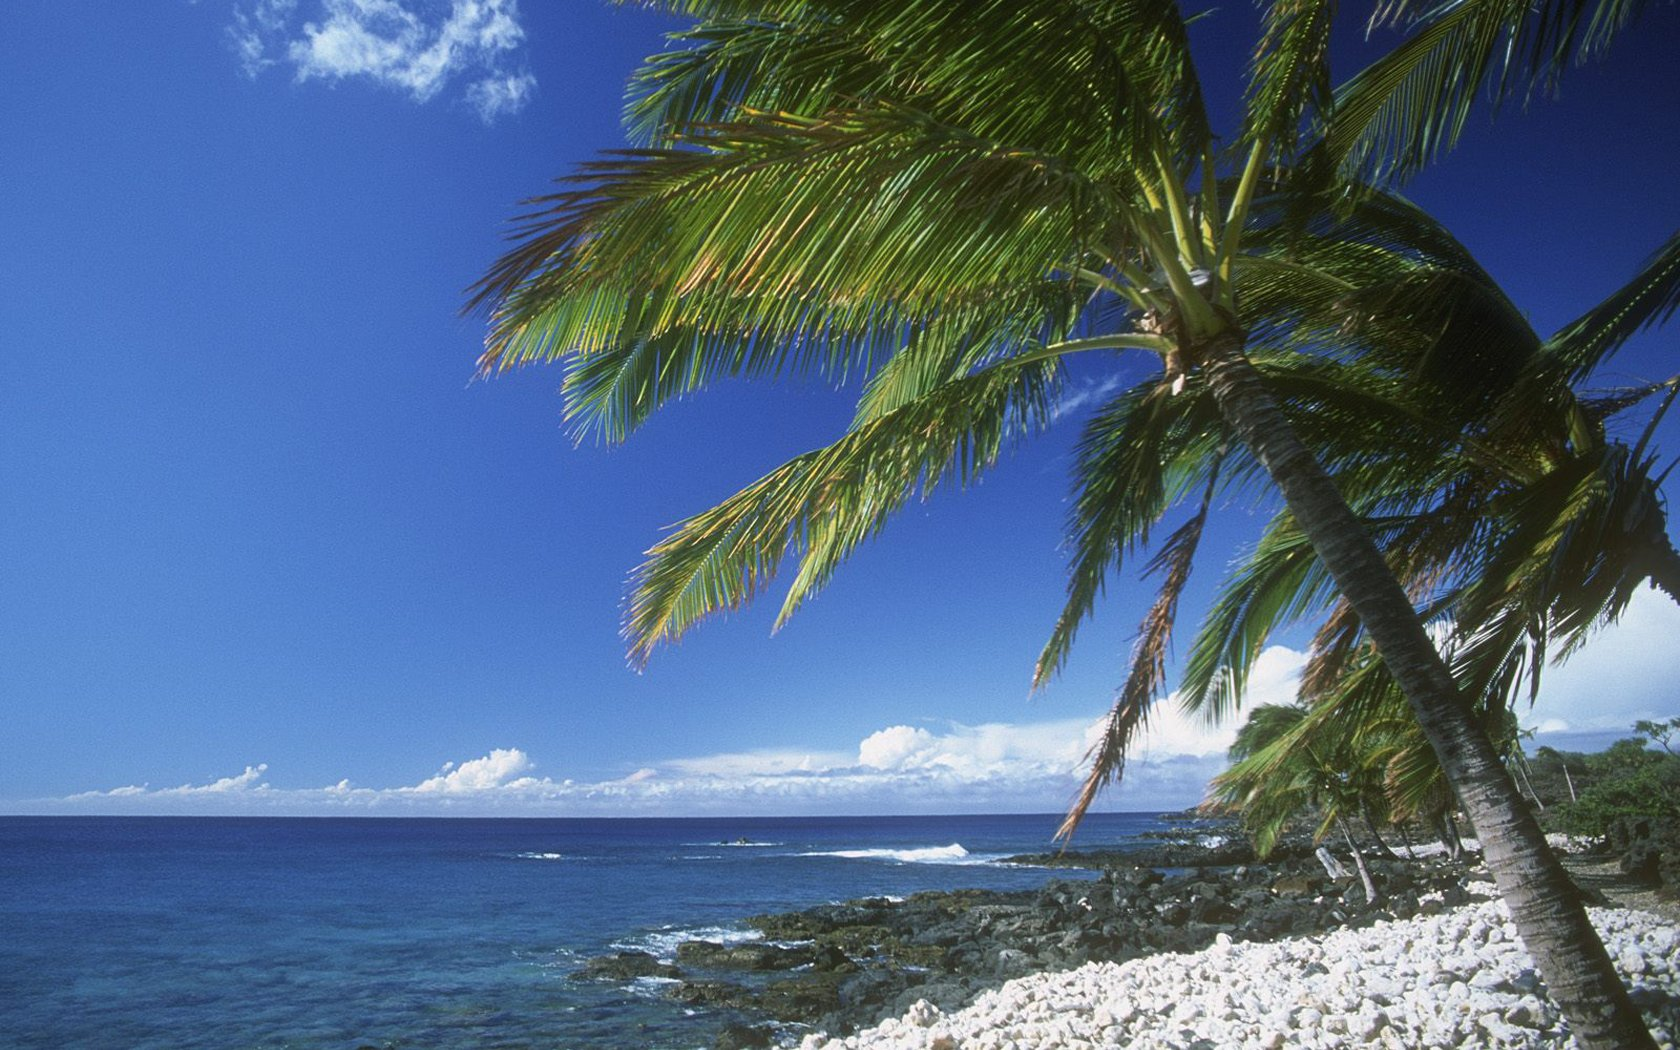 Hawaiian palm beach blue coast current nature ocean palm tree